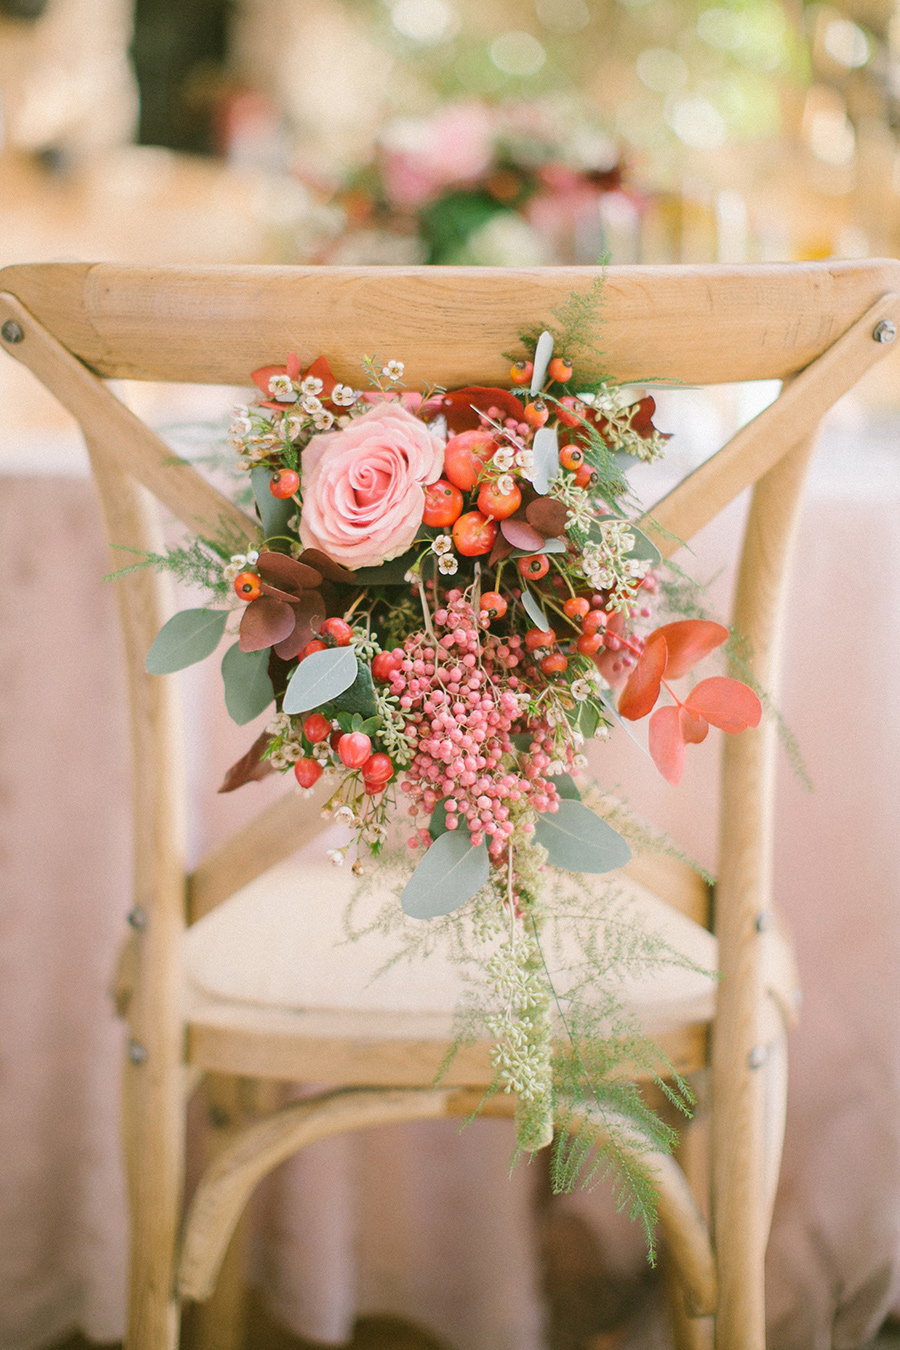 Boho Chic Inspired Wedding Chair Decor / styled shoot coordinated by Love 4 Wed / photo by Anna Roussos Photography